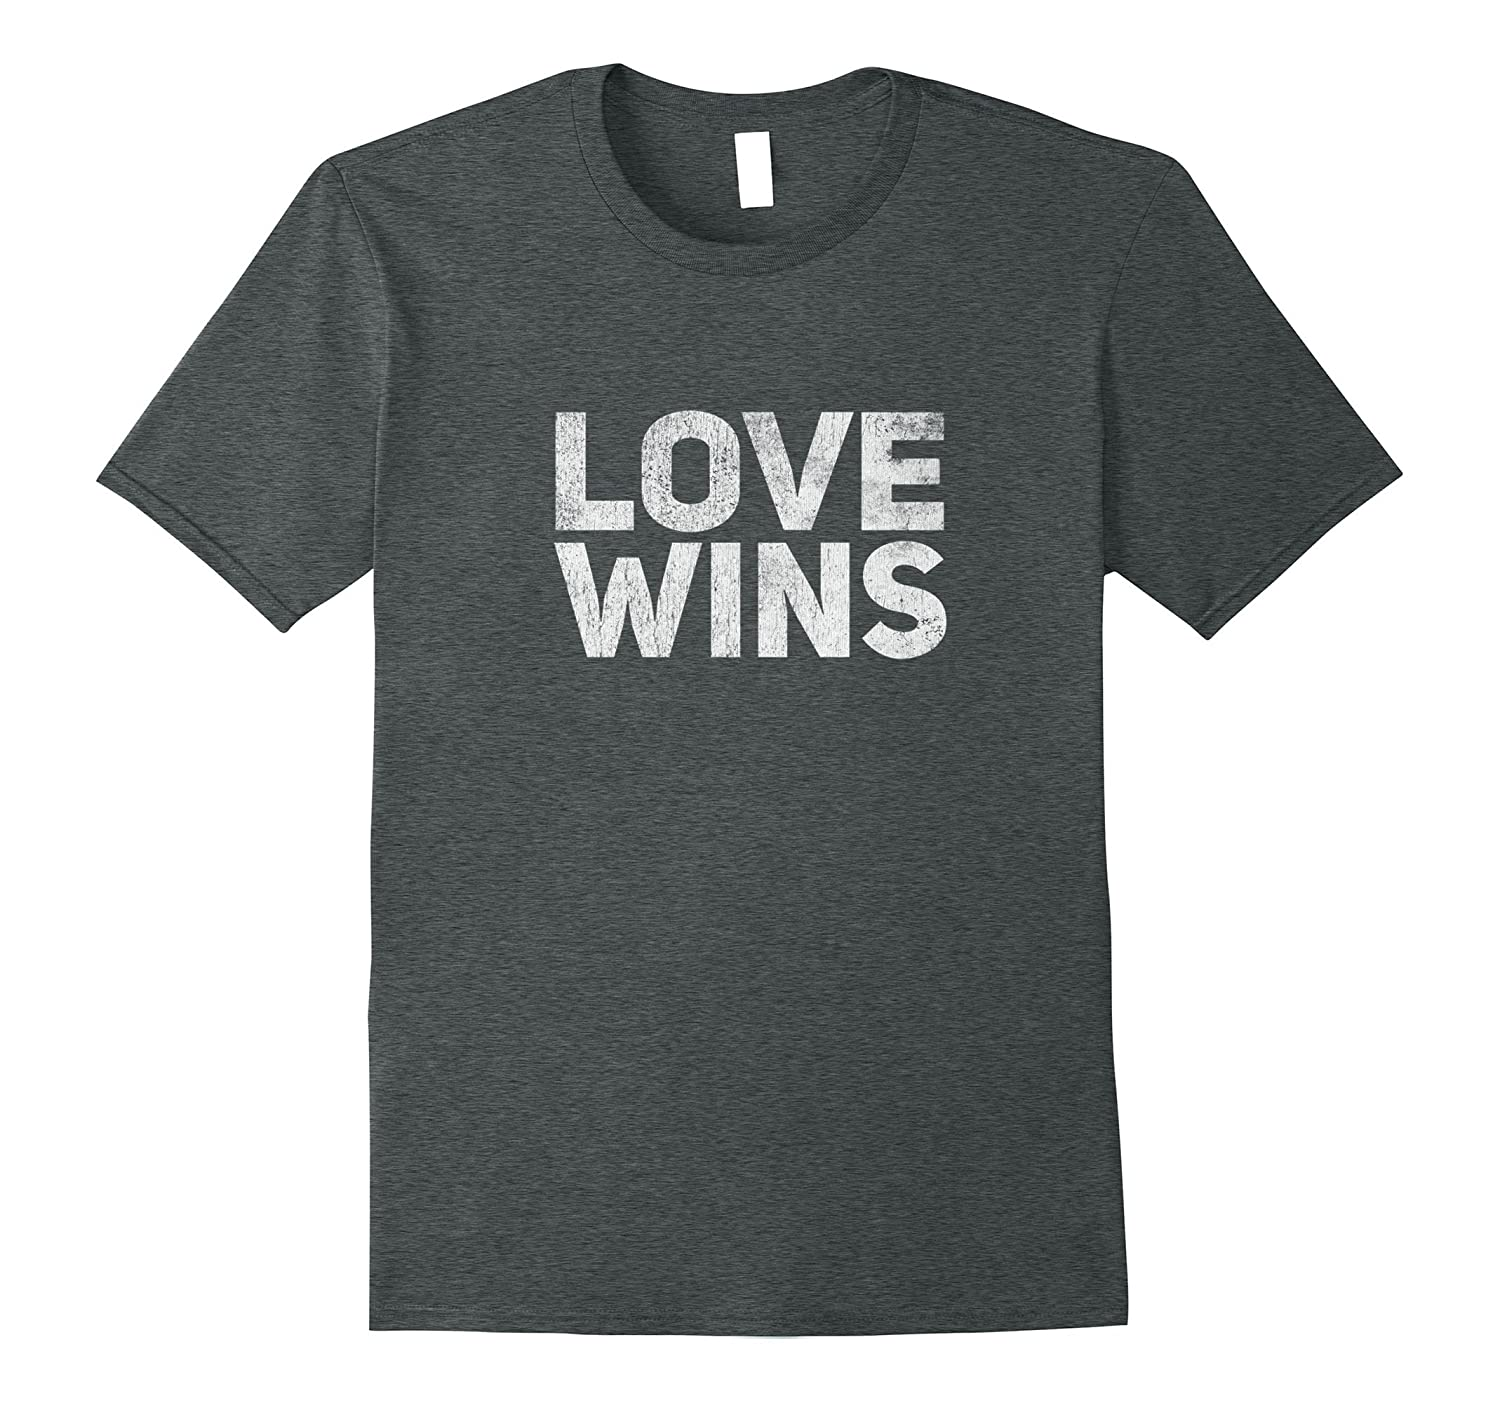 Love Wins Charity T - Refugee - Clean Water - Poverty-BN